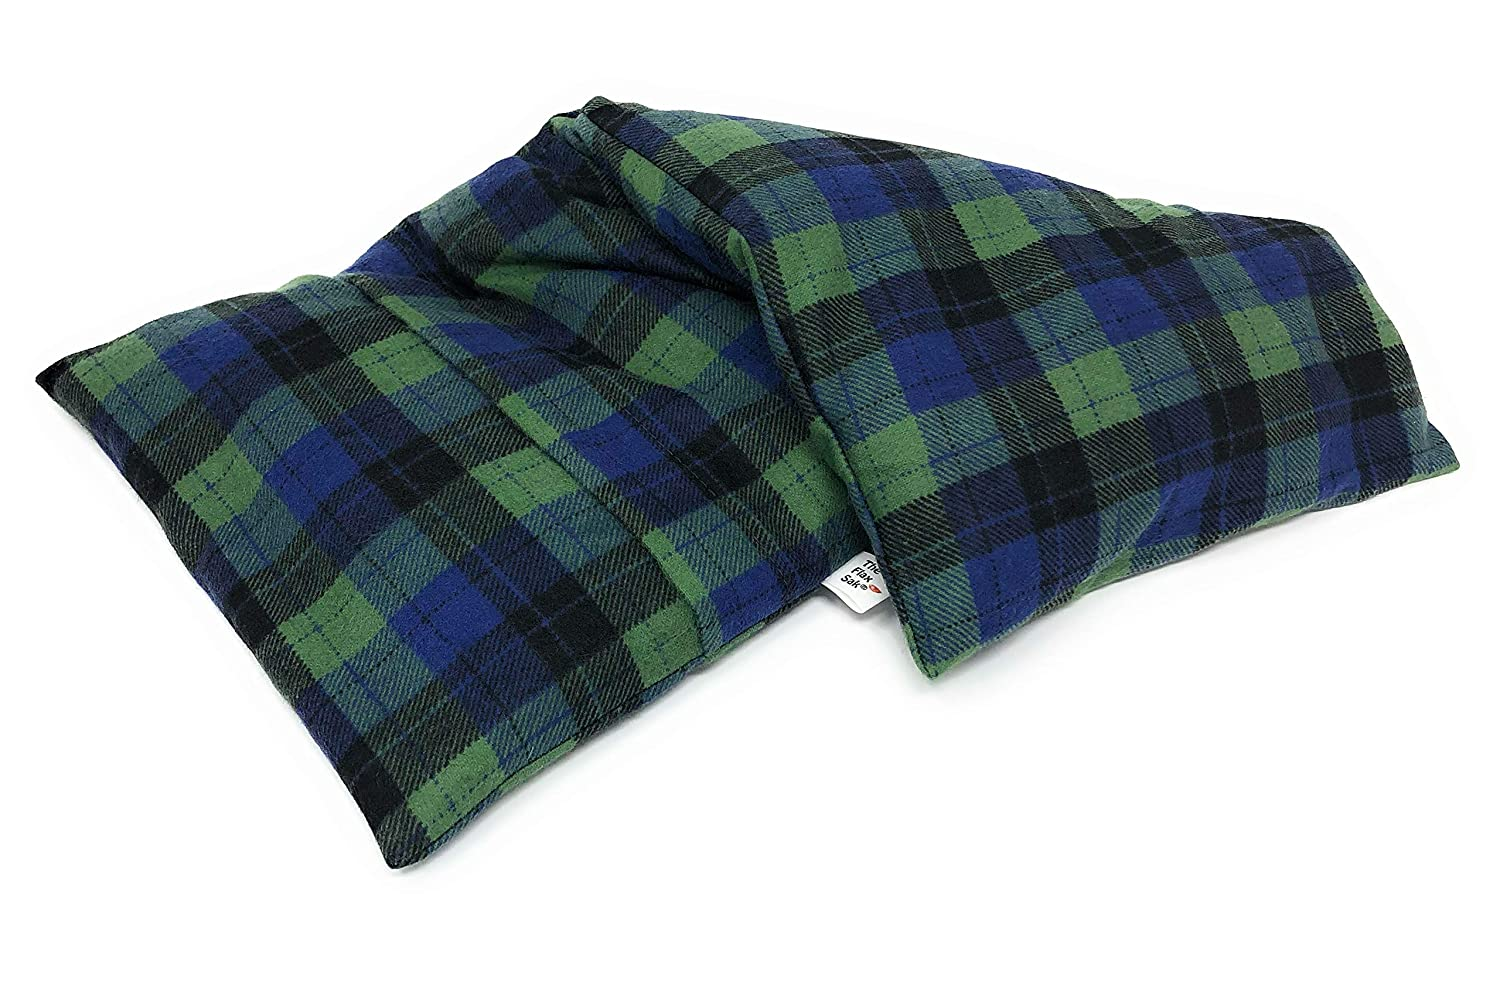 Microwavable Heating Pad | Hot or Cold Pack | Bed Warmer | Hot and Cold Therapy | Pain Relief | Large Unscented | Hunter Green and Blue Plaid